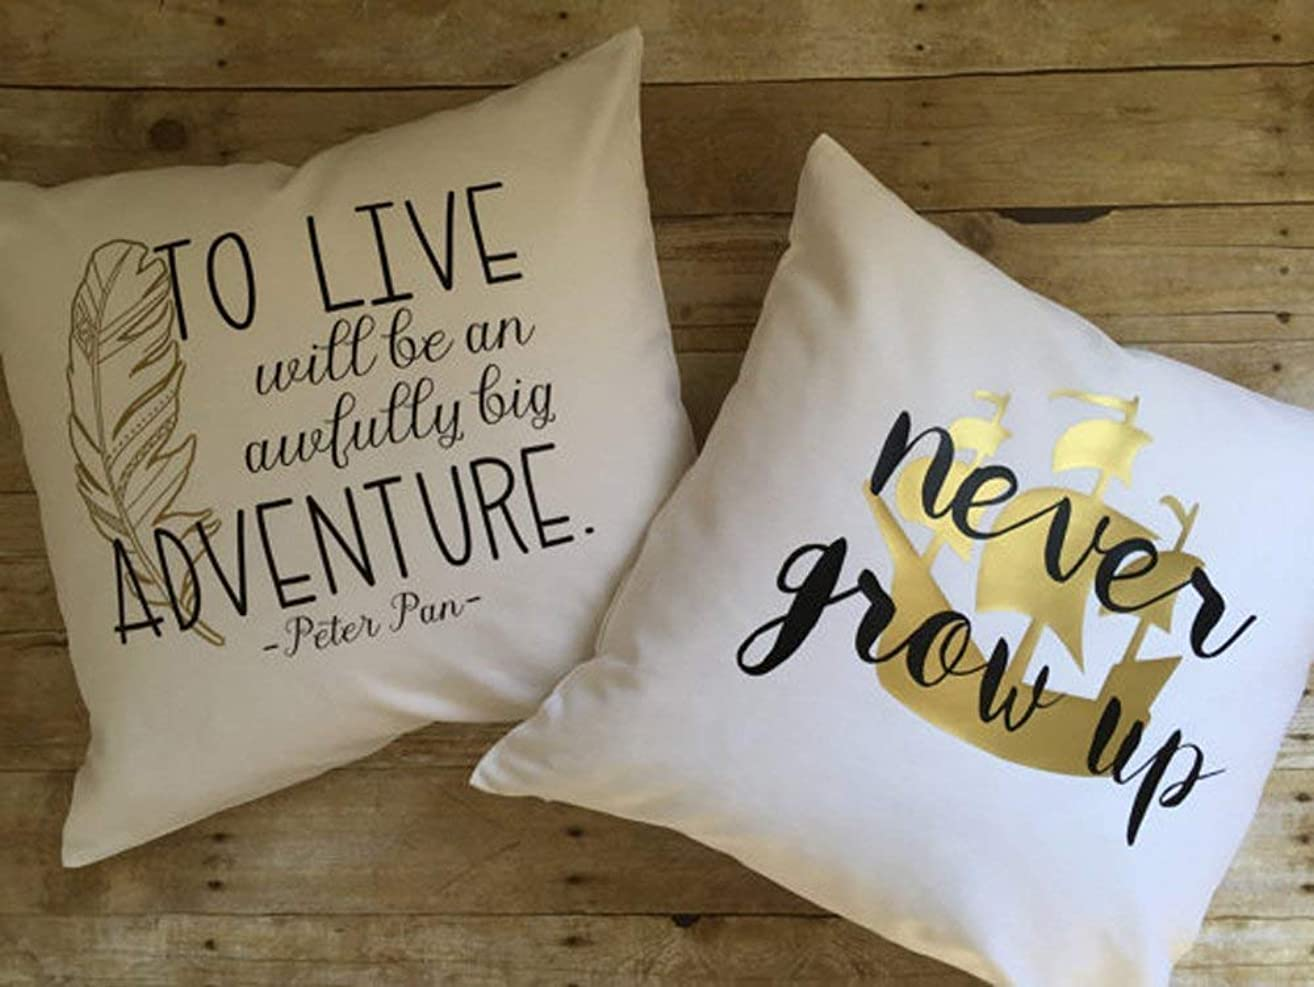 High quality Peter Pan pillow covers set, lost boys rustic decor, never grow up, adventure, pirate theme bedding, Peter Pan bedding, baby boy bedding